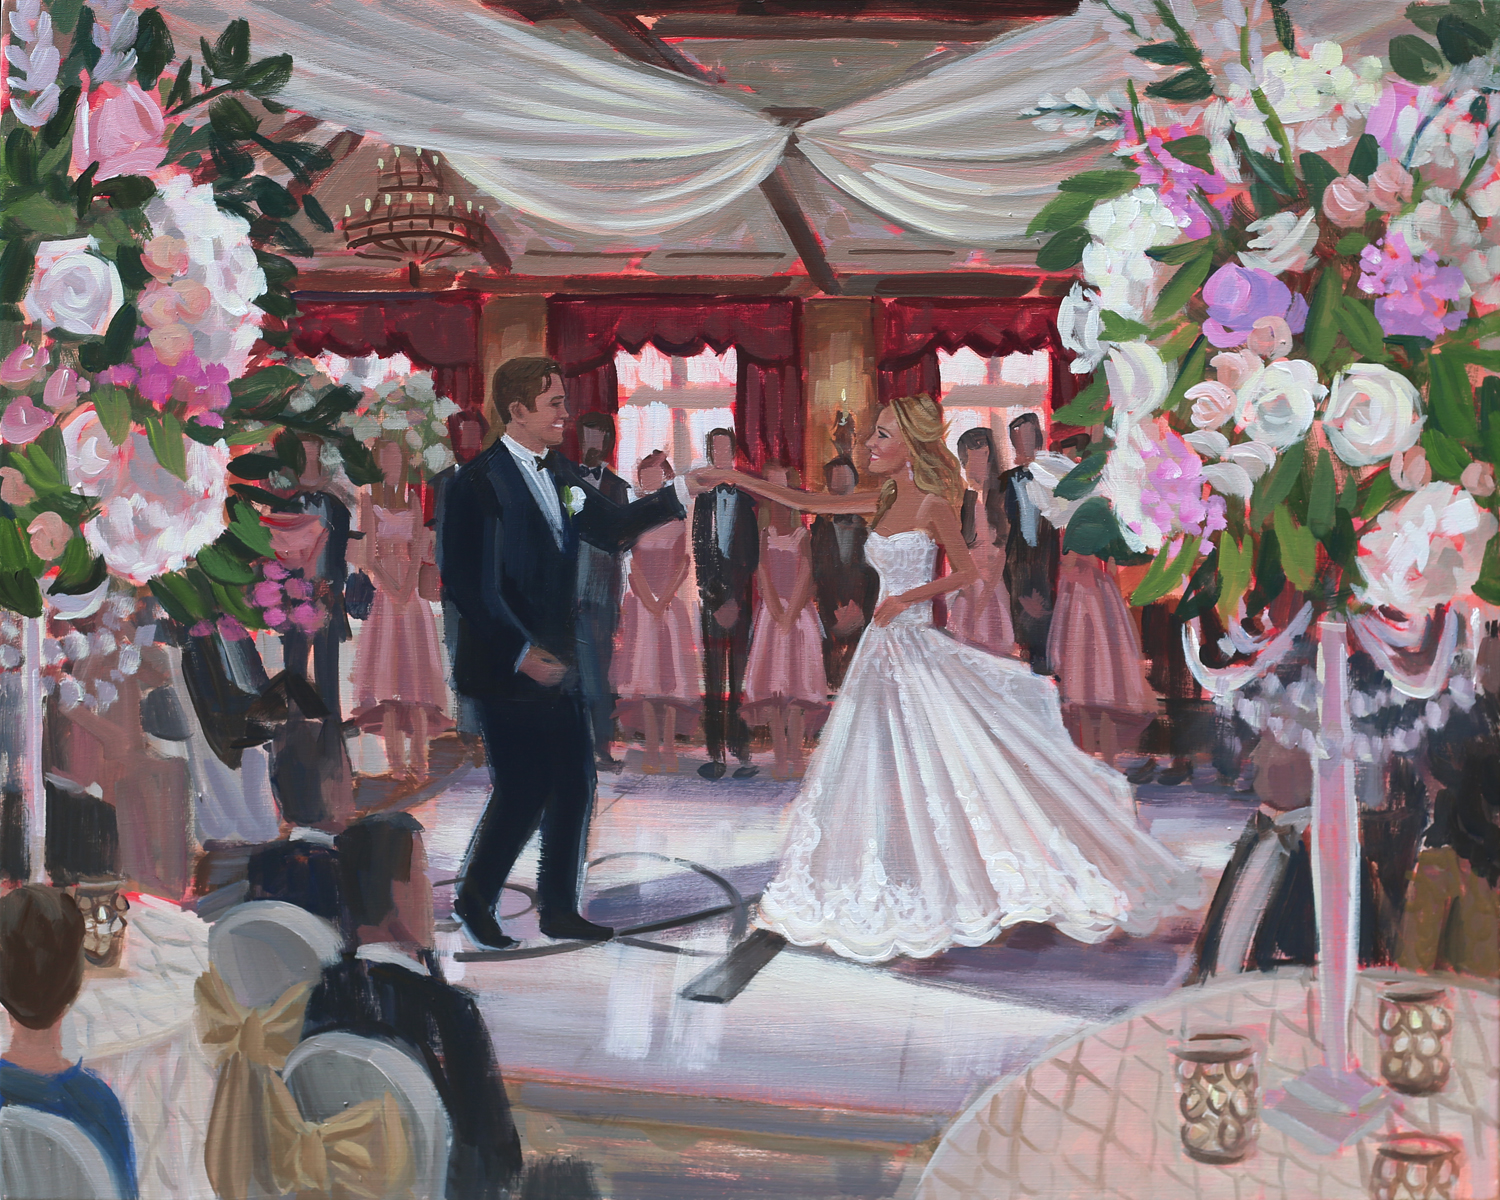 Ponte Vedra's TPC Sawgrass was a spectacular backdrop for Nolyn + Dylan's wedding reception and Ben so enjoyed capturing all the magic with a live painting!